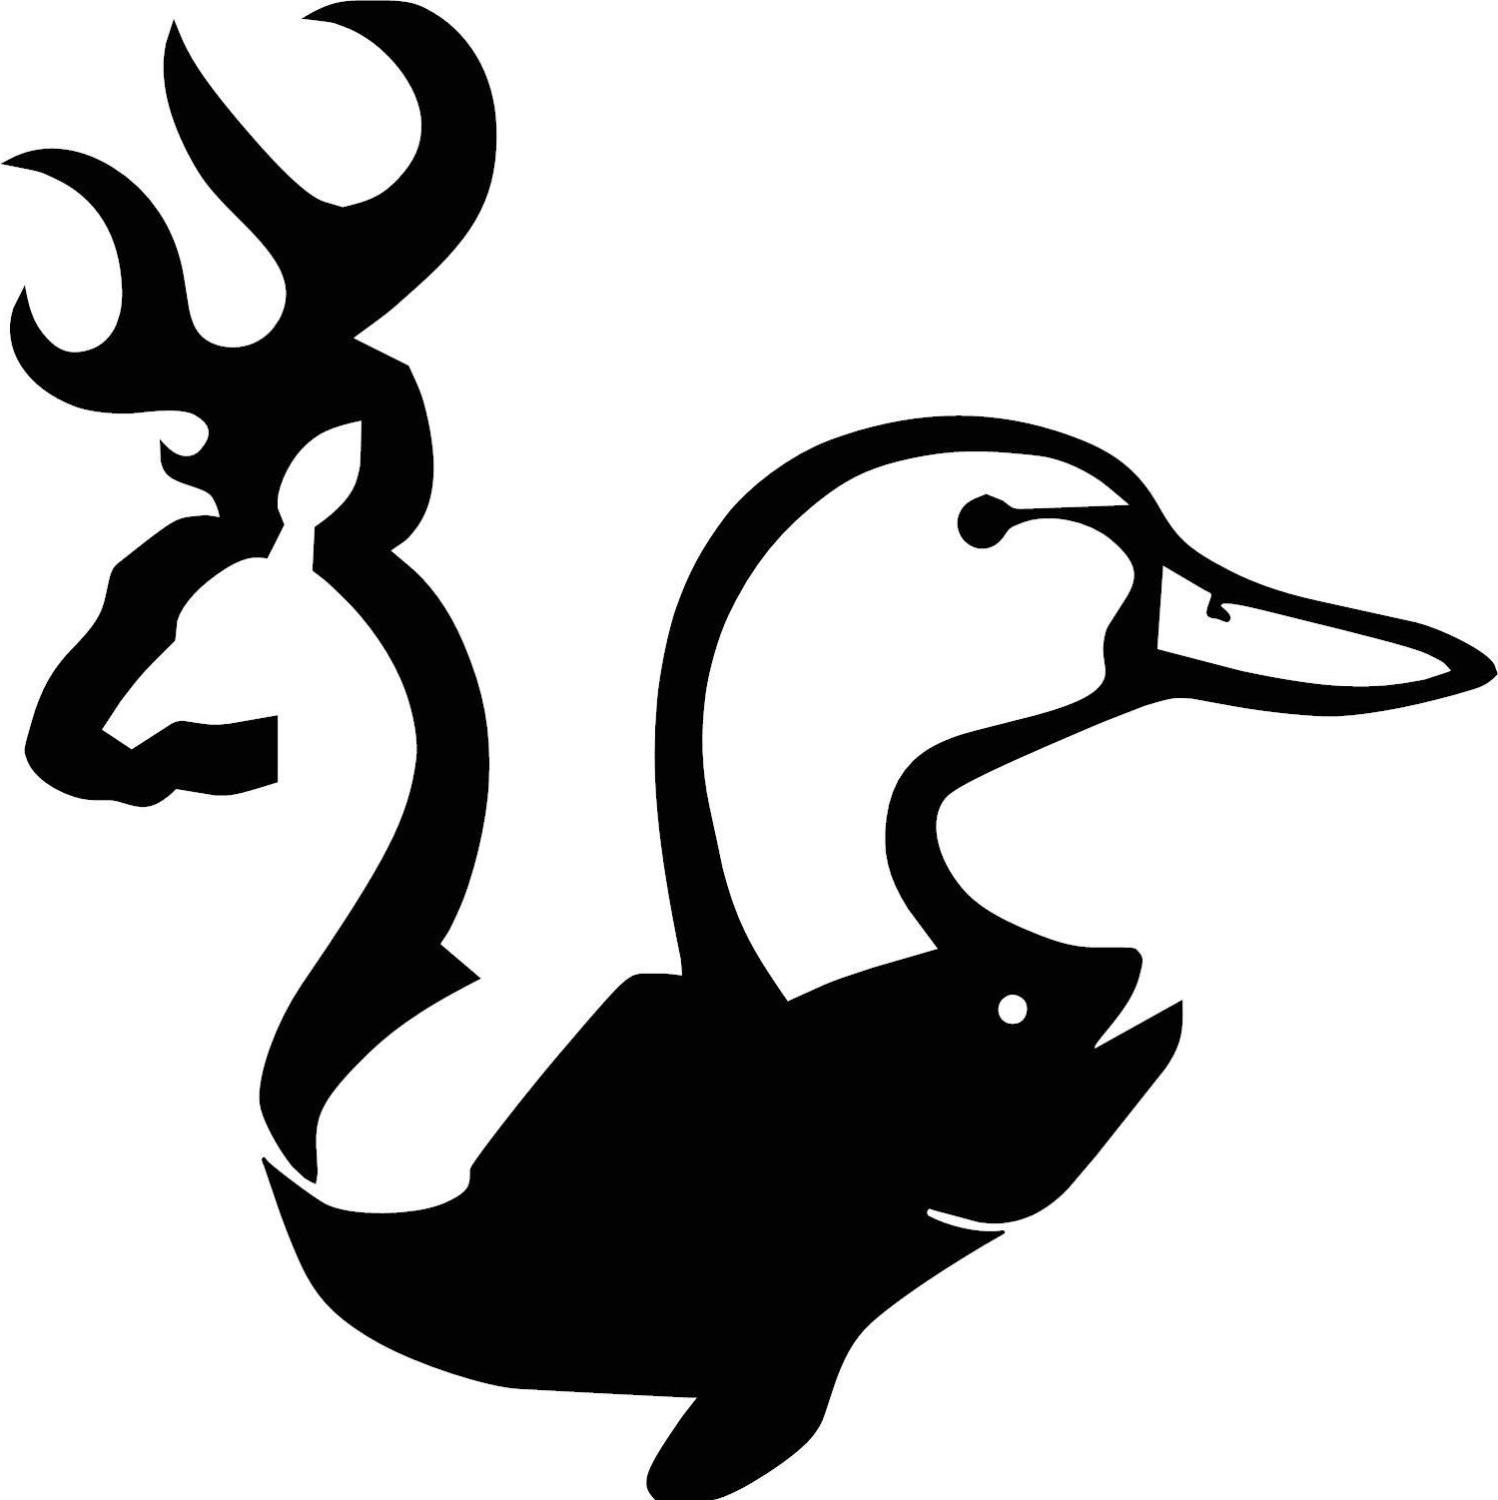 1498x1500 Best Free Deer Clipart Duck Hunting Pictures